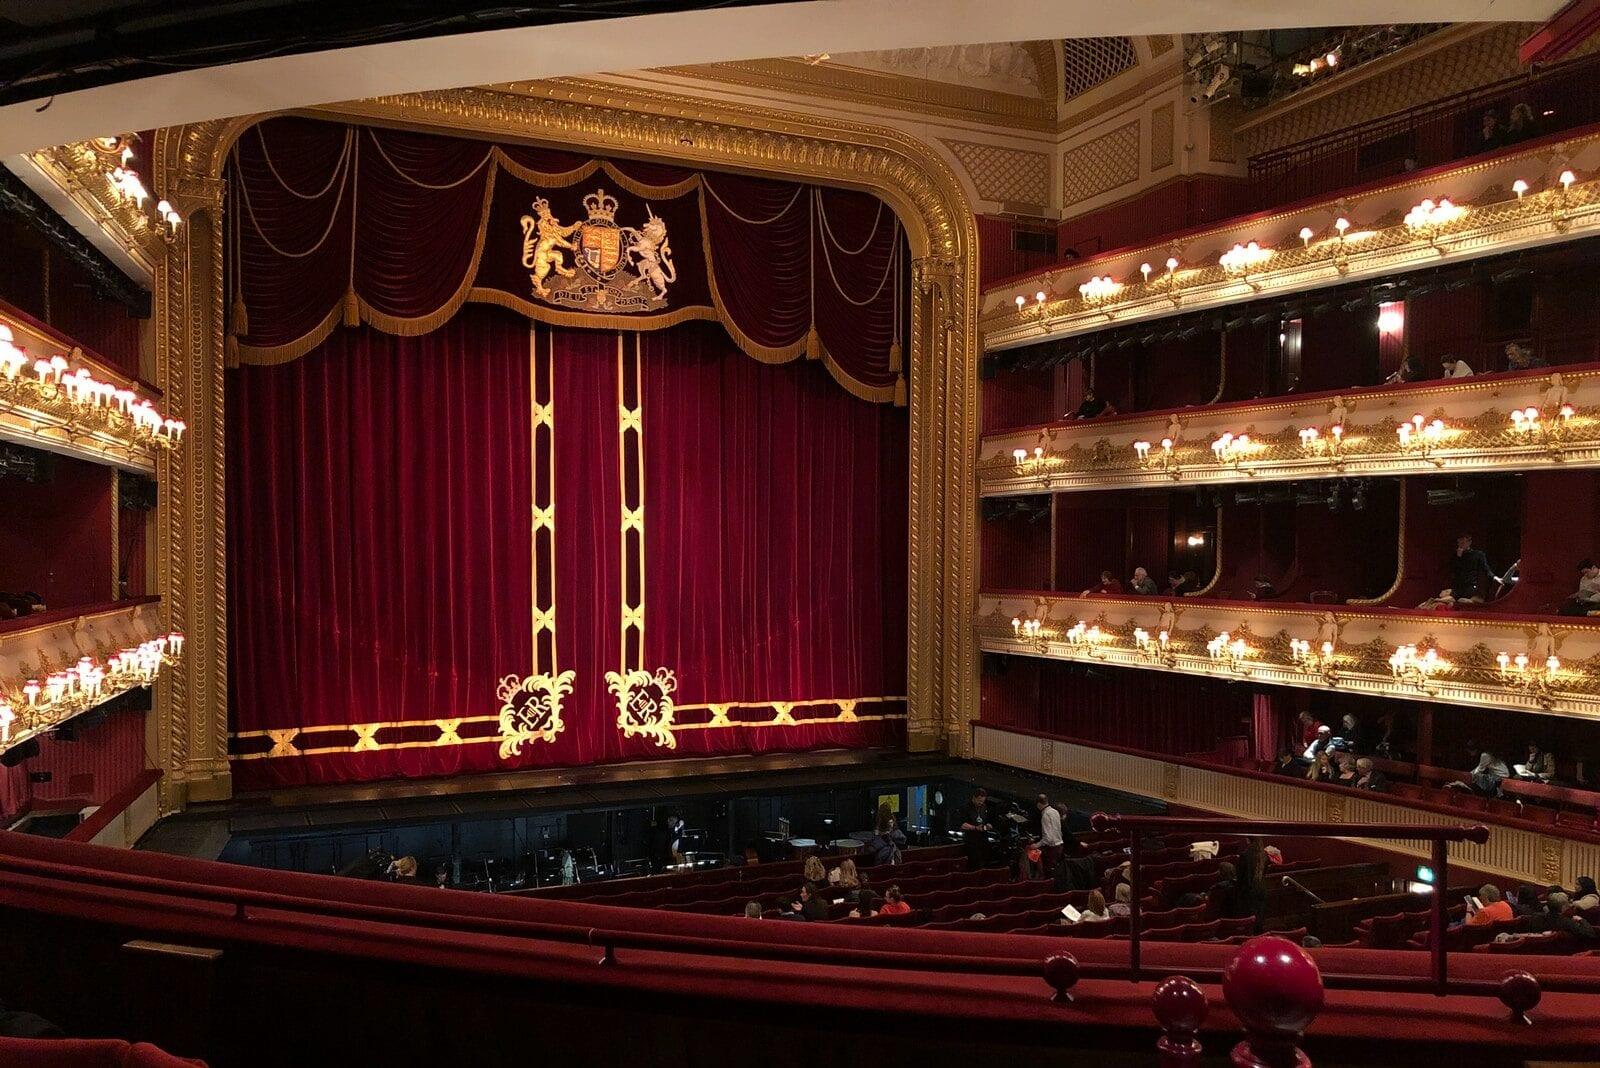 Royal Opera House - One Day in London Itinerary